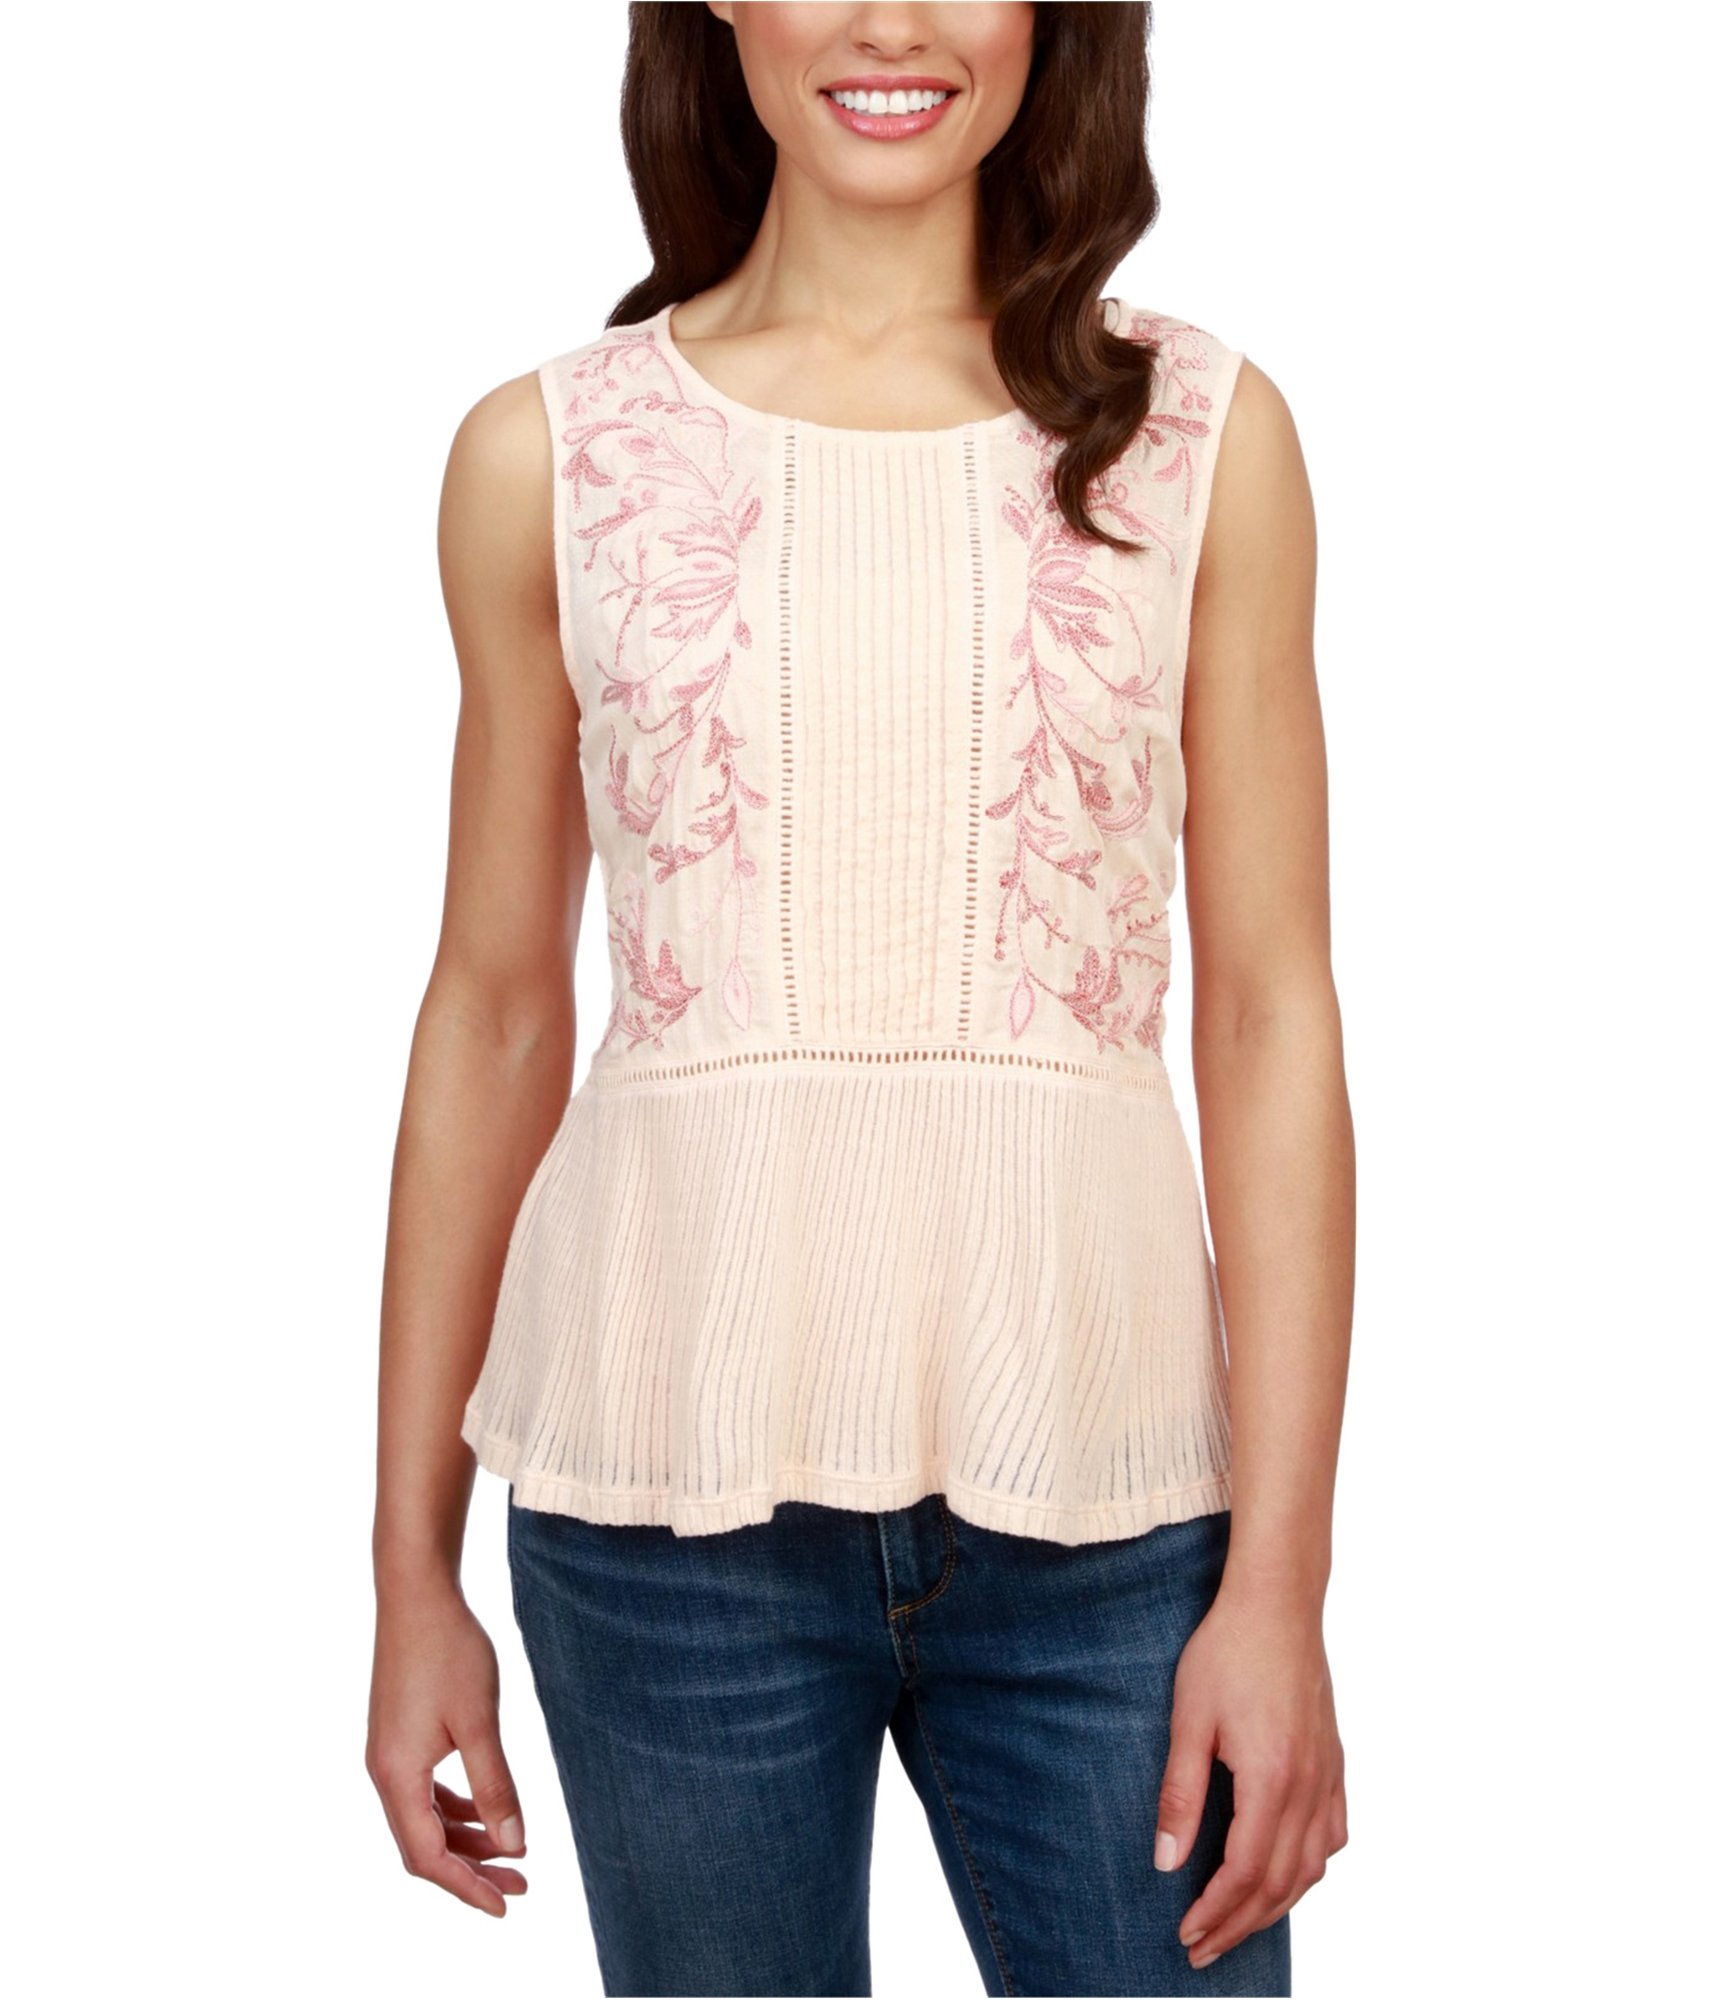 Lucky Brand Women's Embroidered Ladder-Trim Sleeveless Top, Pale Peach (L)